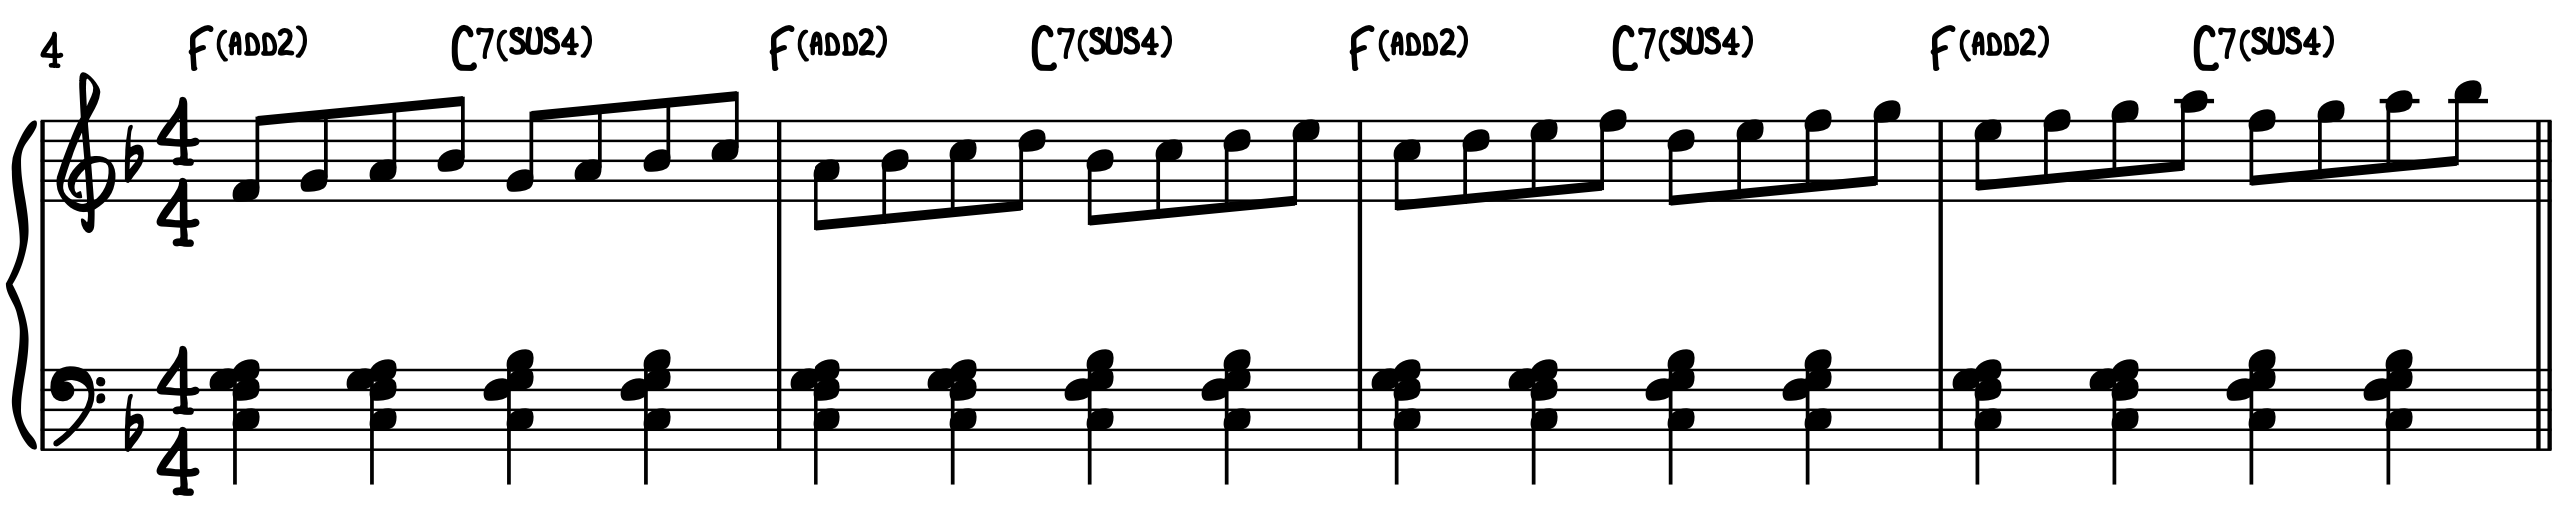 Technique #1–Block Shift to improvise piano with the major scale